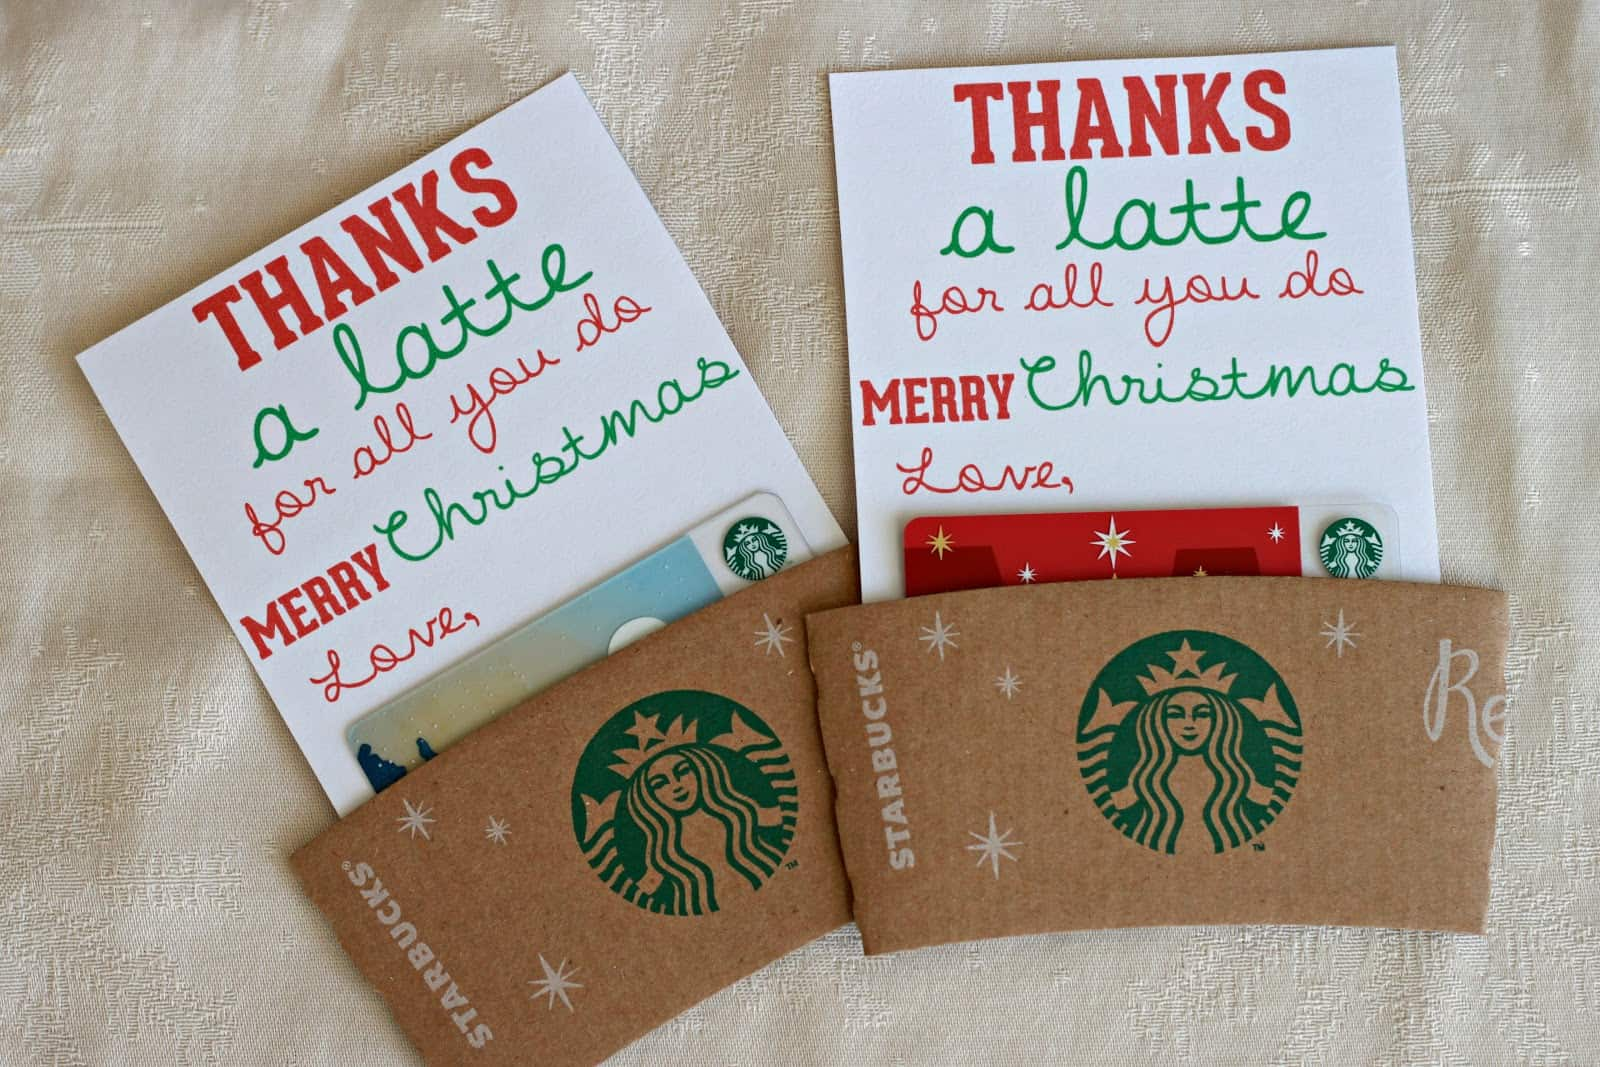 Thanks a latte coffee gift